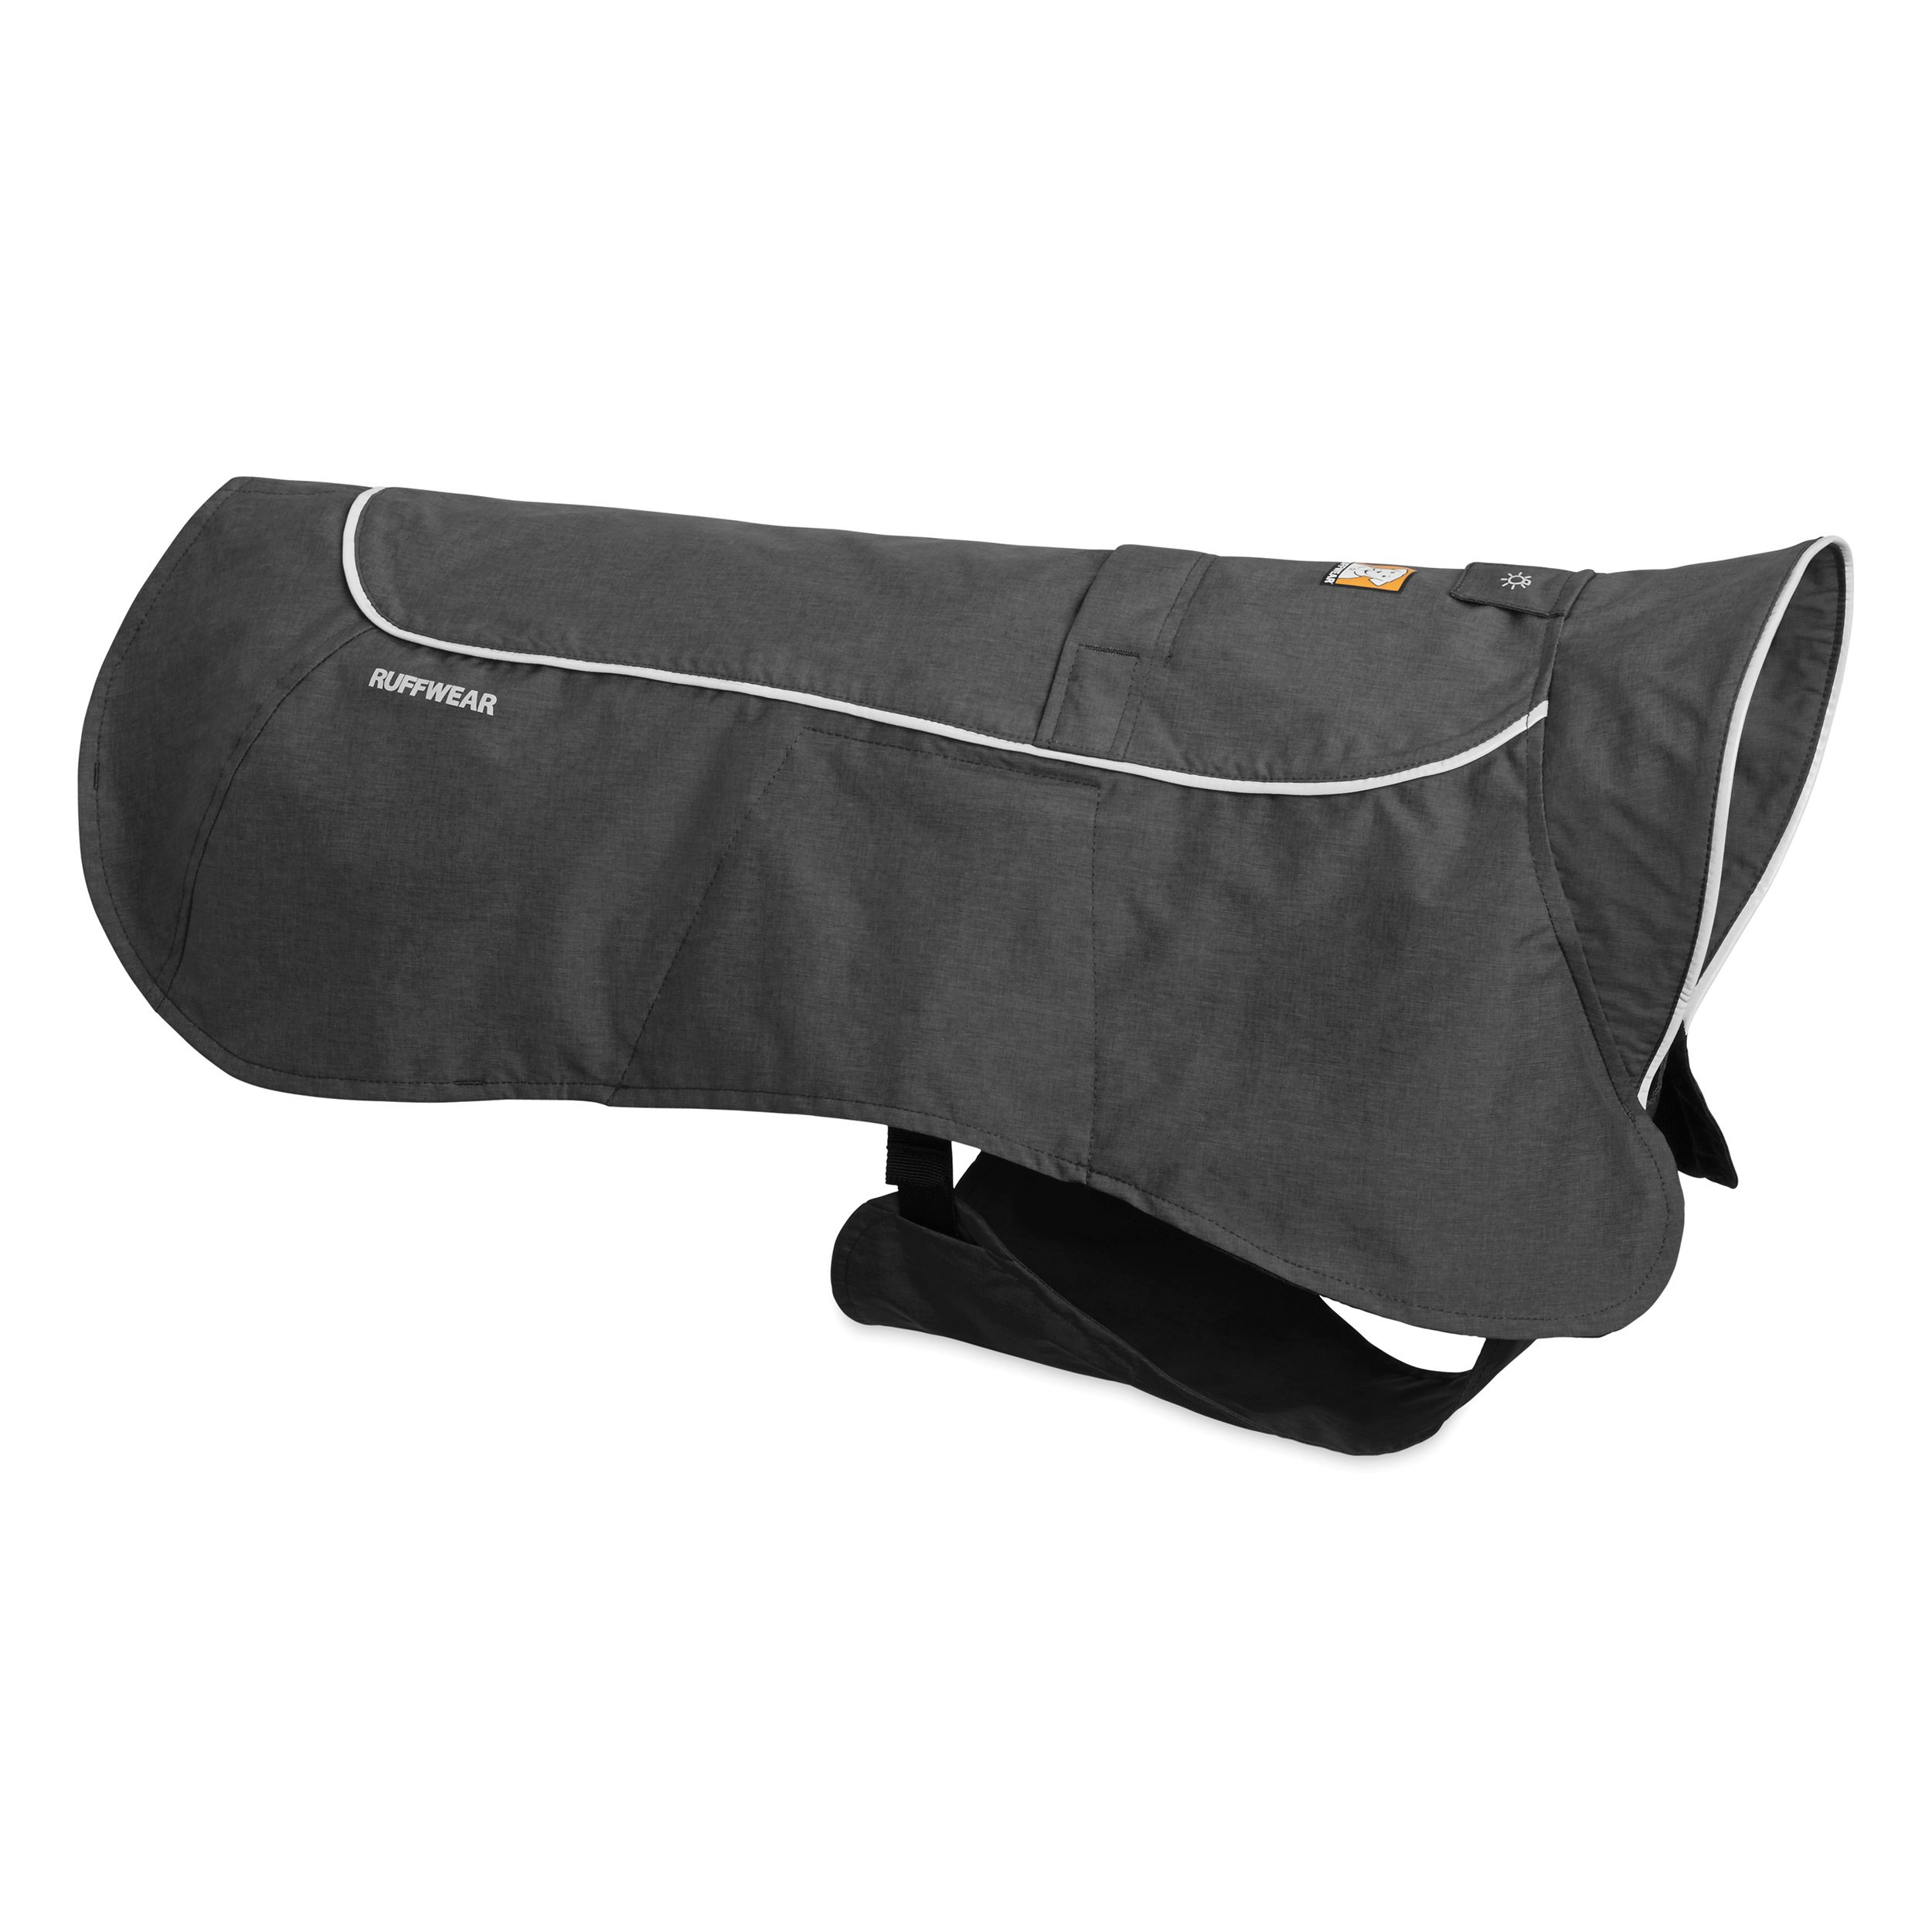 Ruffwear - Aira Full Coverage, Waterproof, Breathable Rain Jacket for Dogs, Twilight Gray, Small